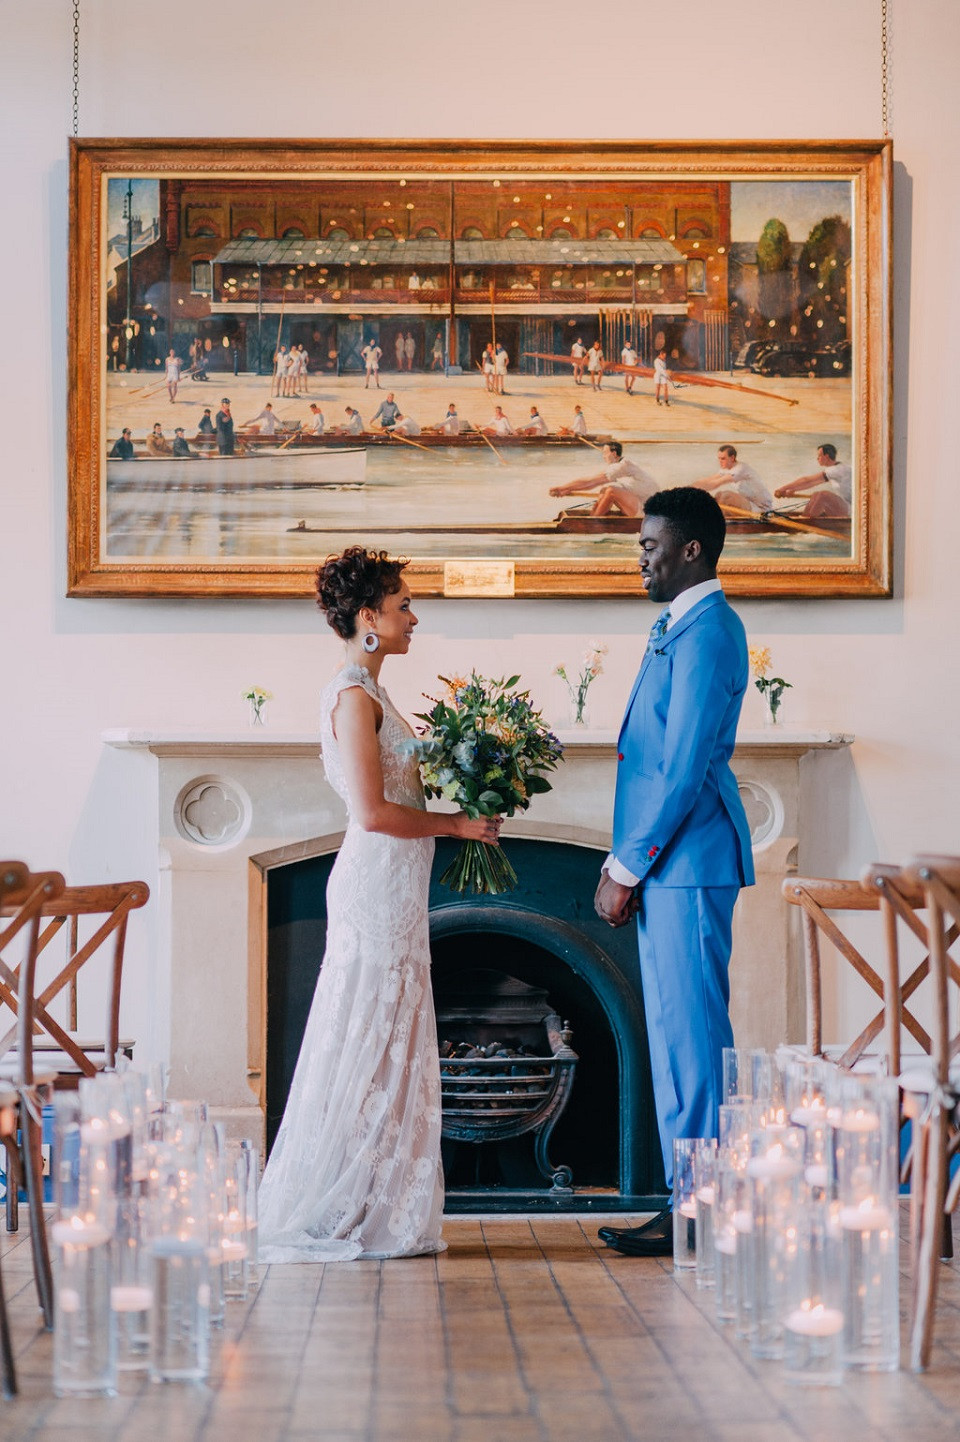 Wedding ceremony at the London Rowing Club